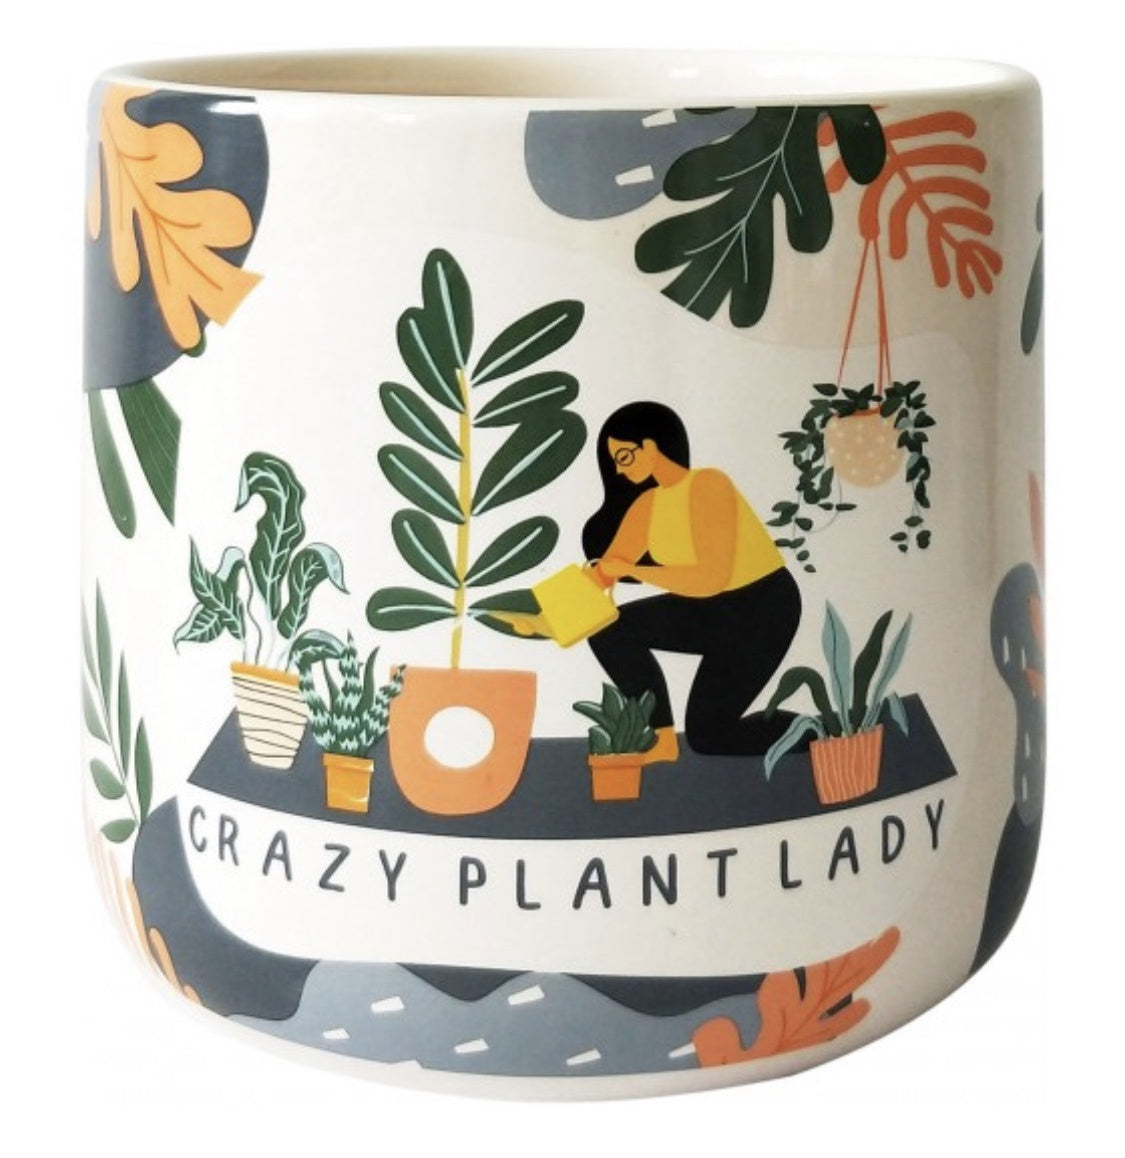 Crazy Plant Lady Planter Blue & Terracotta Medium 13cm